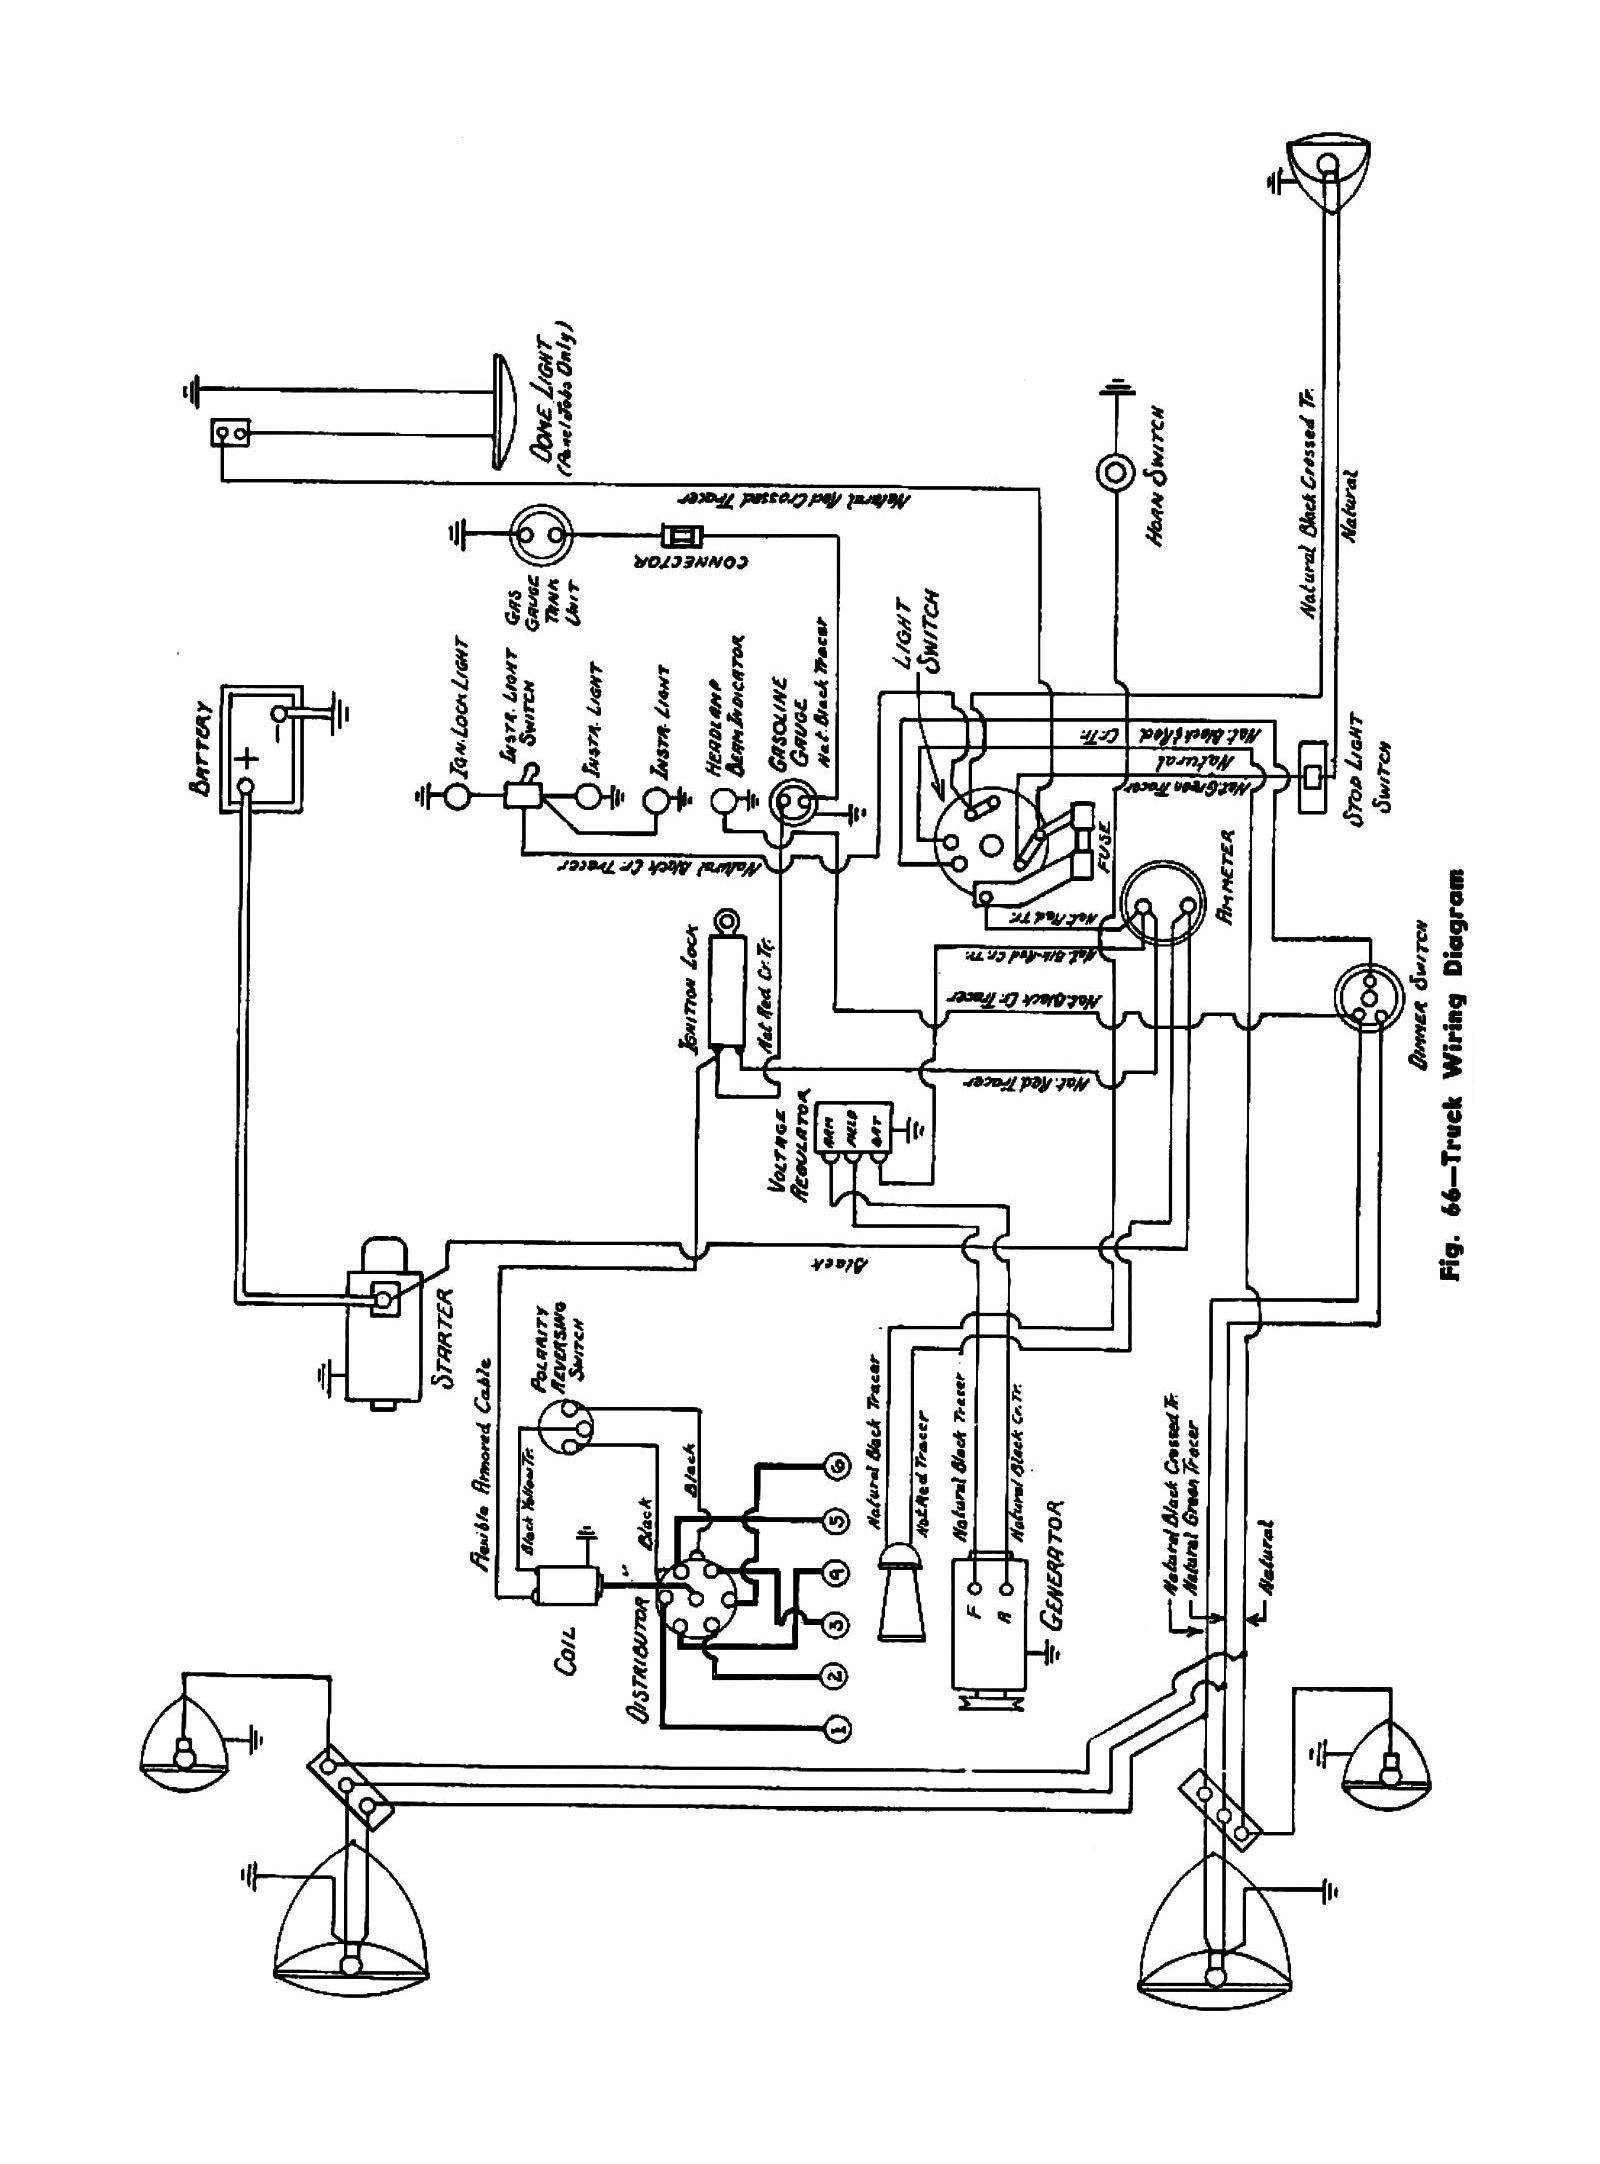 45truck old fuse box wiring diagram 91 corvette fuse box \u2022 wiring diagrams Ford Model T at bayanpartner.co